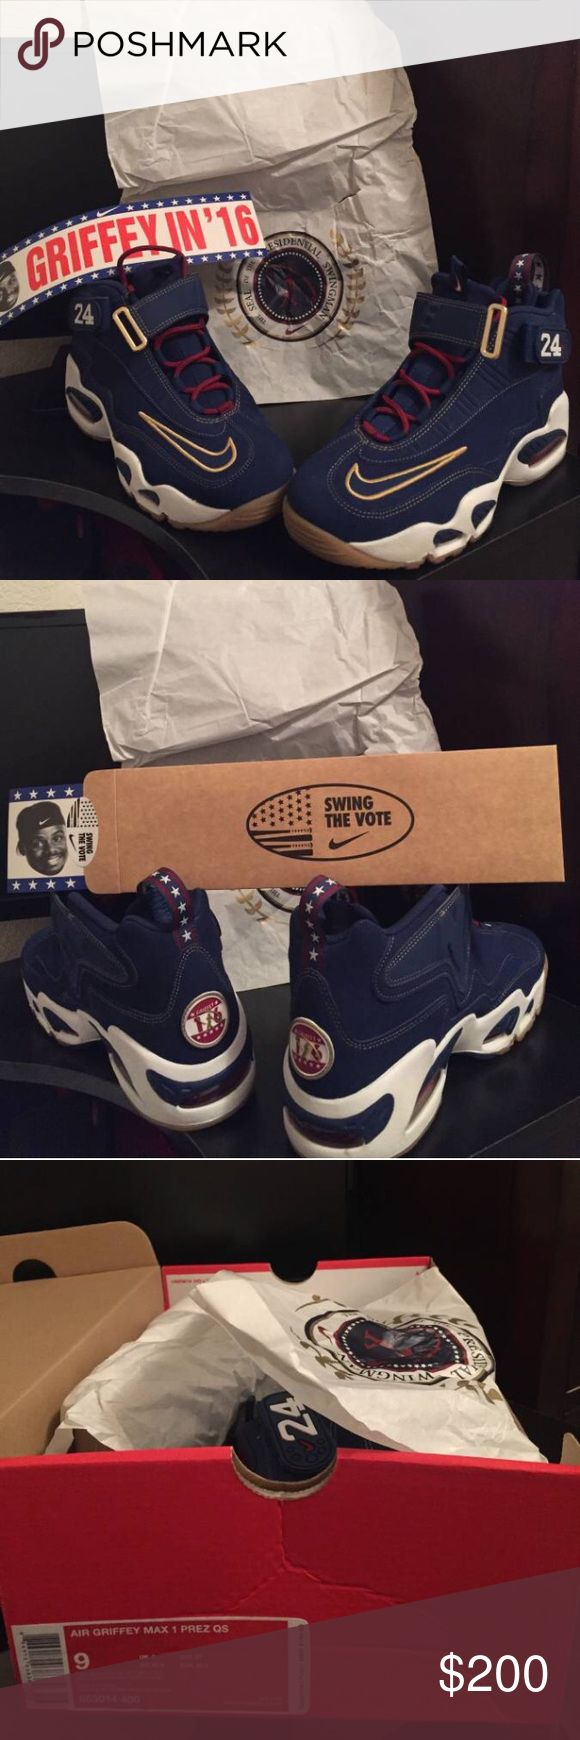 NIKE AIR GRIFFEY MAX GRIFFEY FOR PREZ QUICKSTRIKE The shoes run about a half size small.   Only worn once to take pics in Washington D.C. *see pictures   In near deadstock condition. They have been treated with Crep Protect.   Includes bumper stickers and box  I have the receipt to prove authenticity. Price not quite right? Please make an offer? Nike Shoes Sneakers